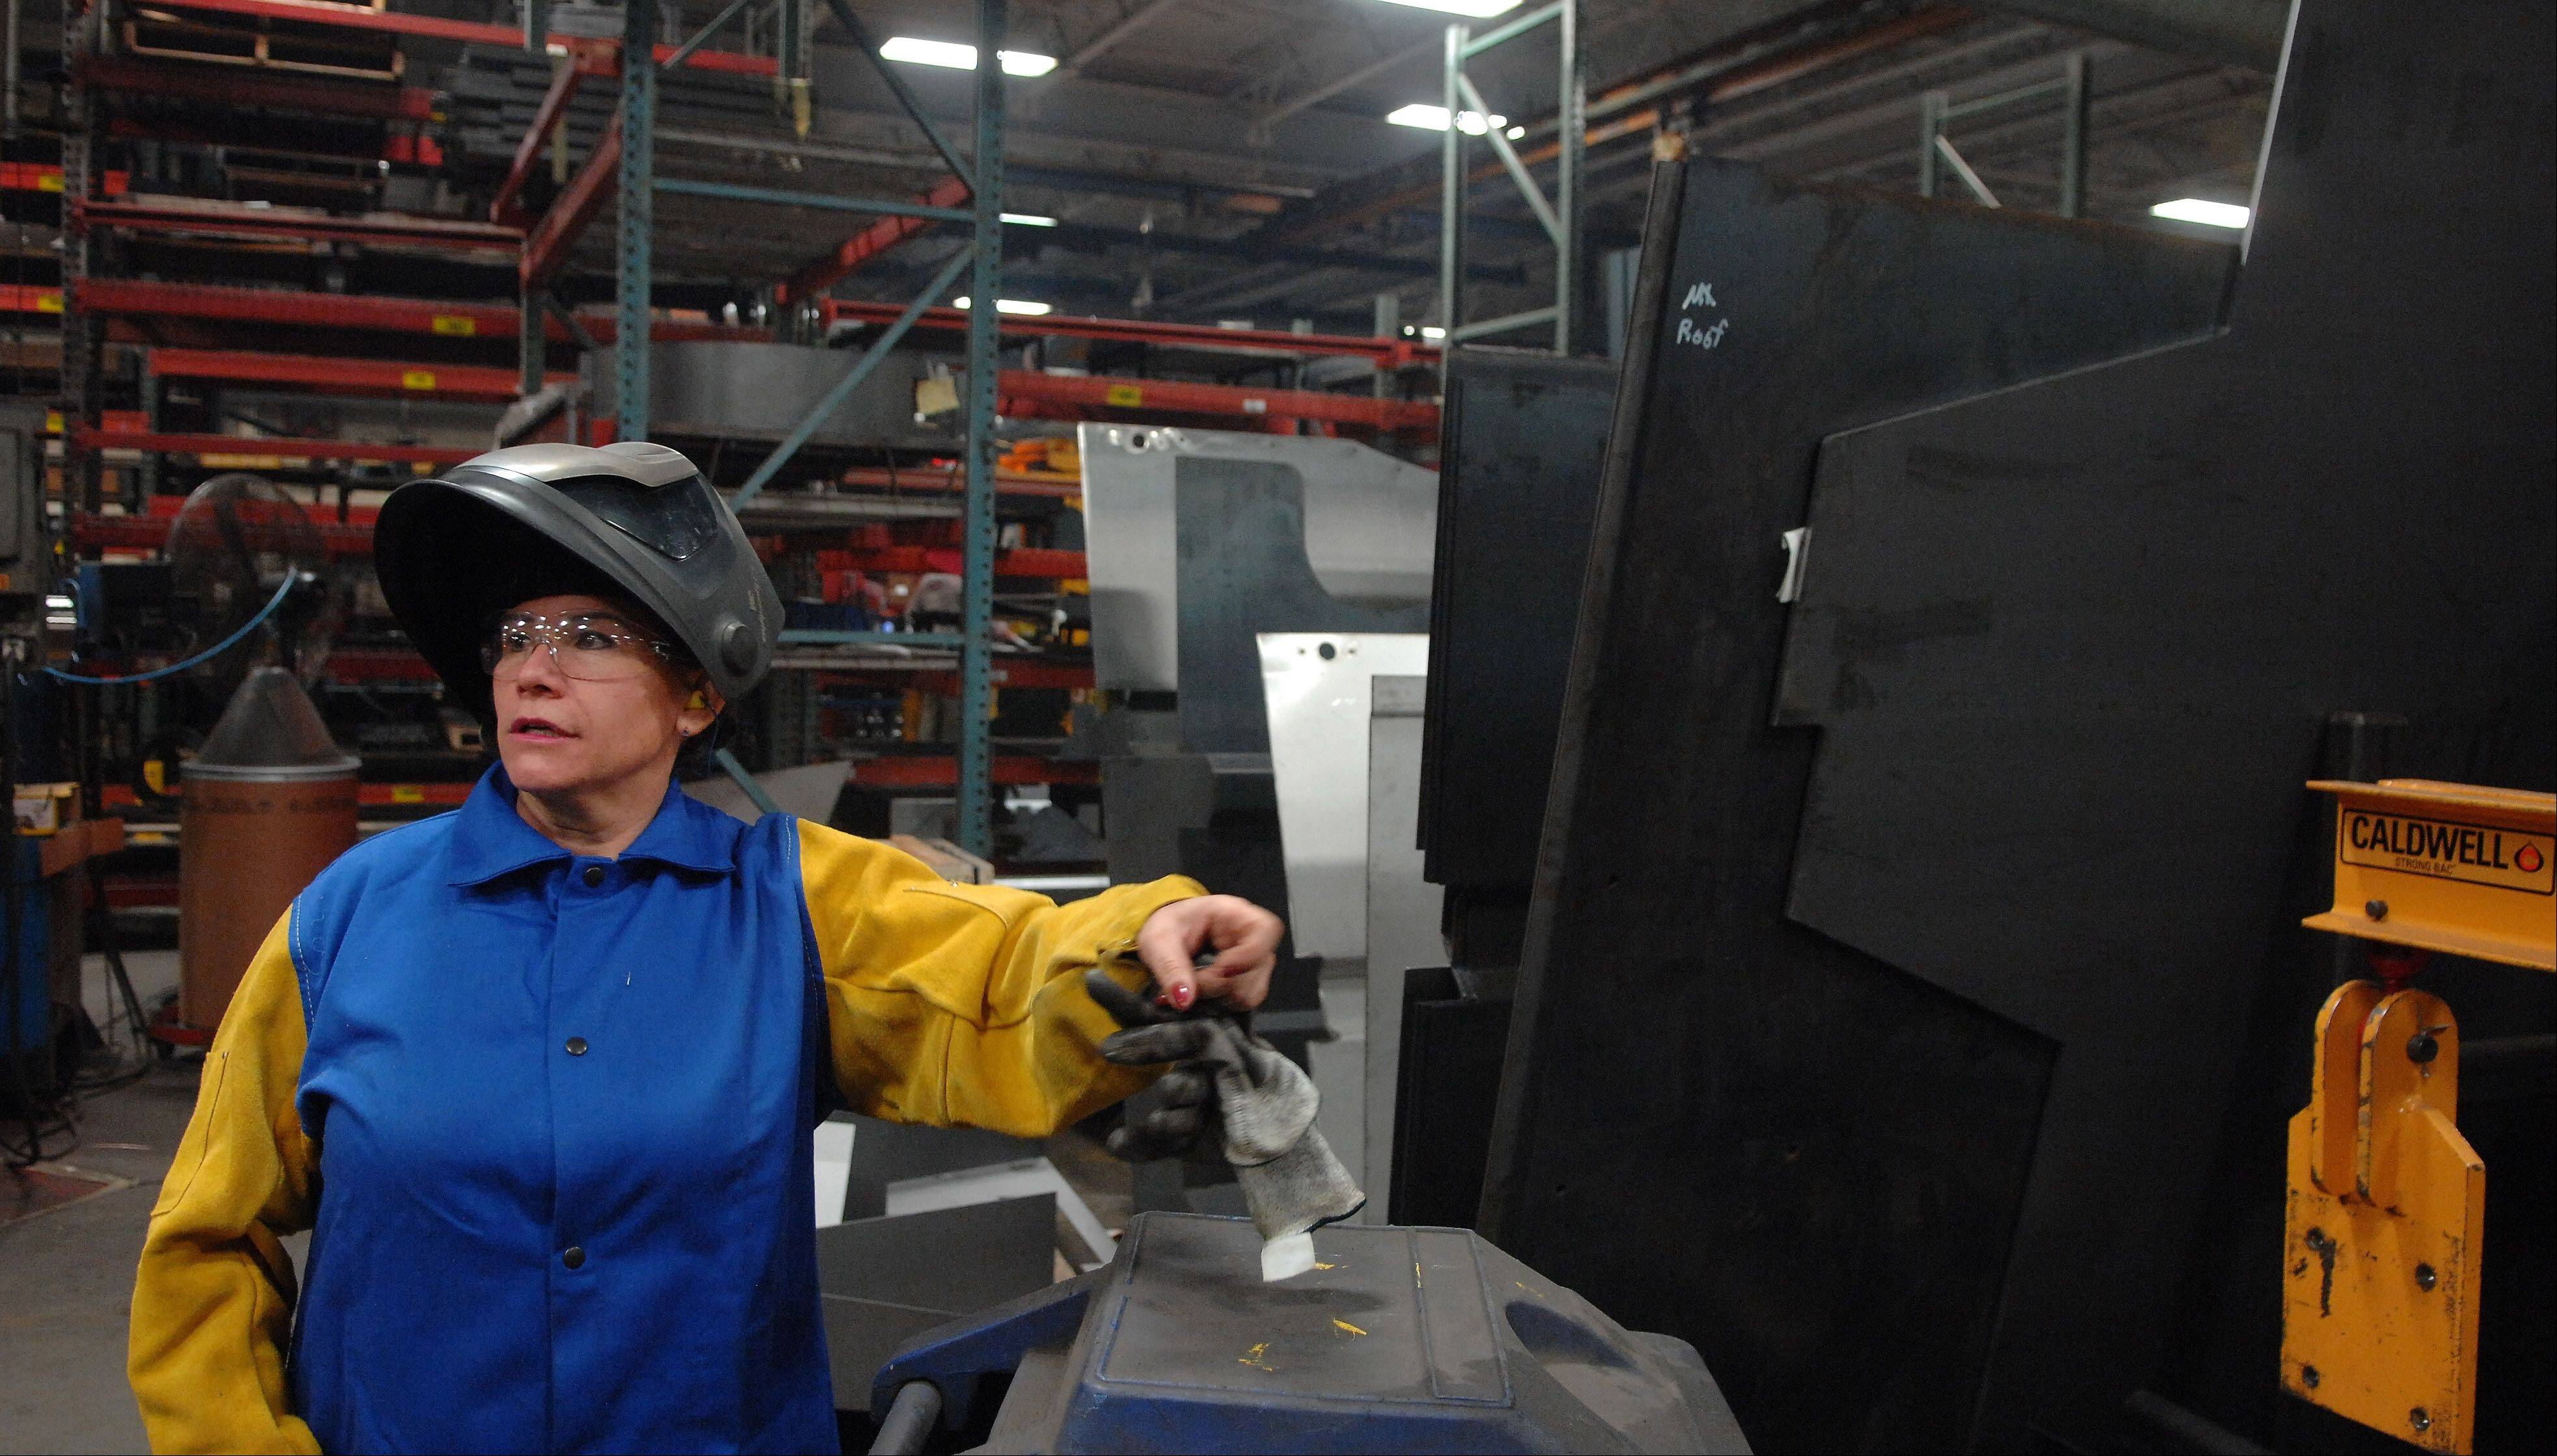 Juana Rodriguez is one of three female welders among 200 at Elgin Sweeper. She and a female co-worker were trained through an Elgin Community College program.